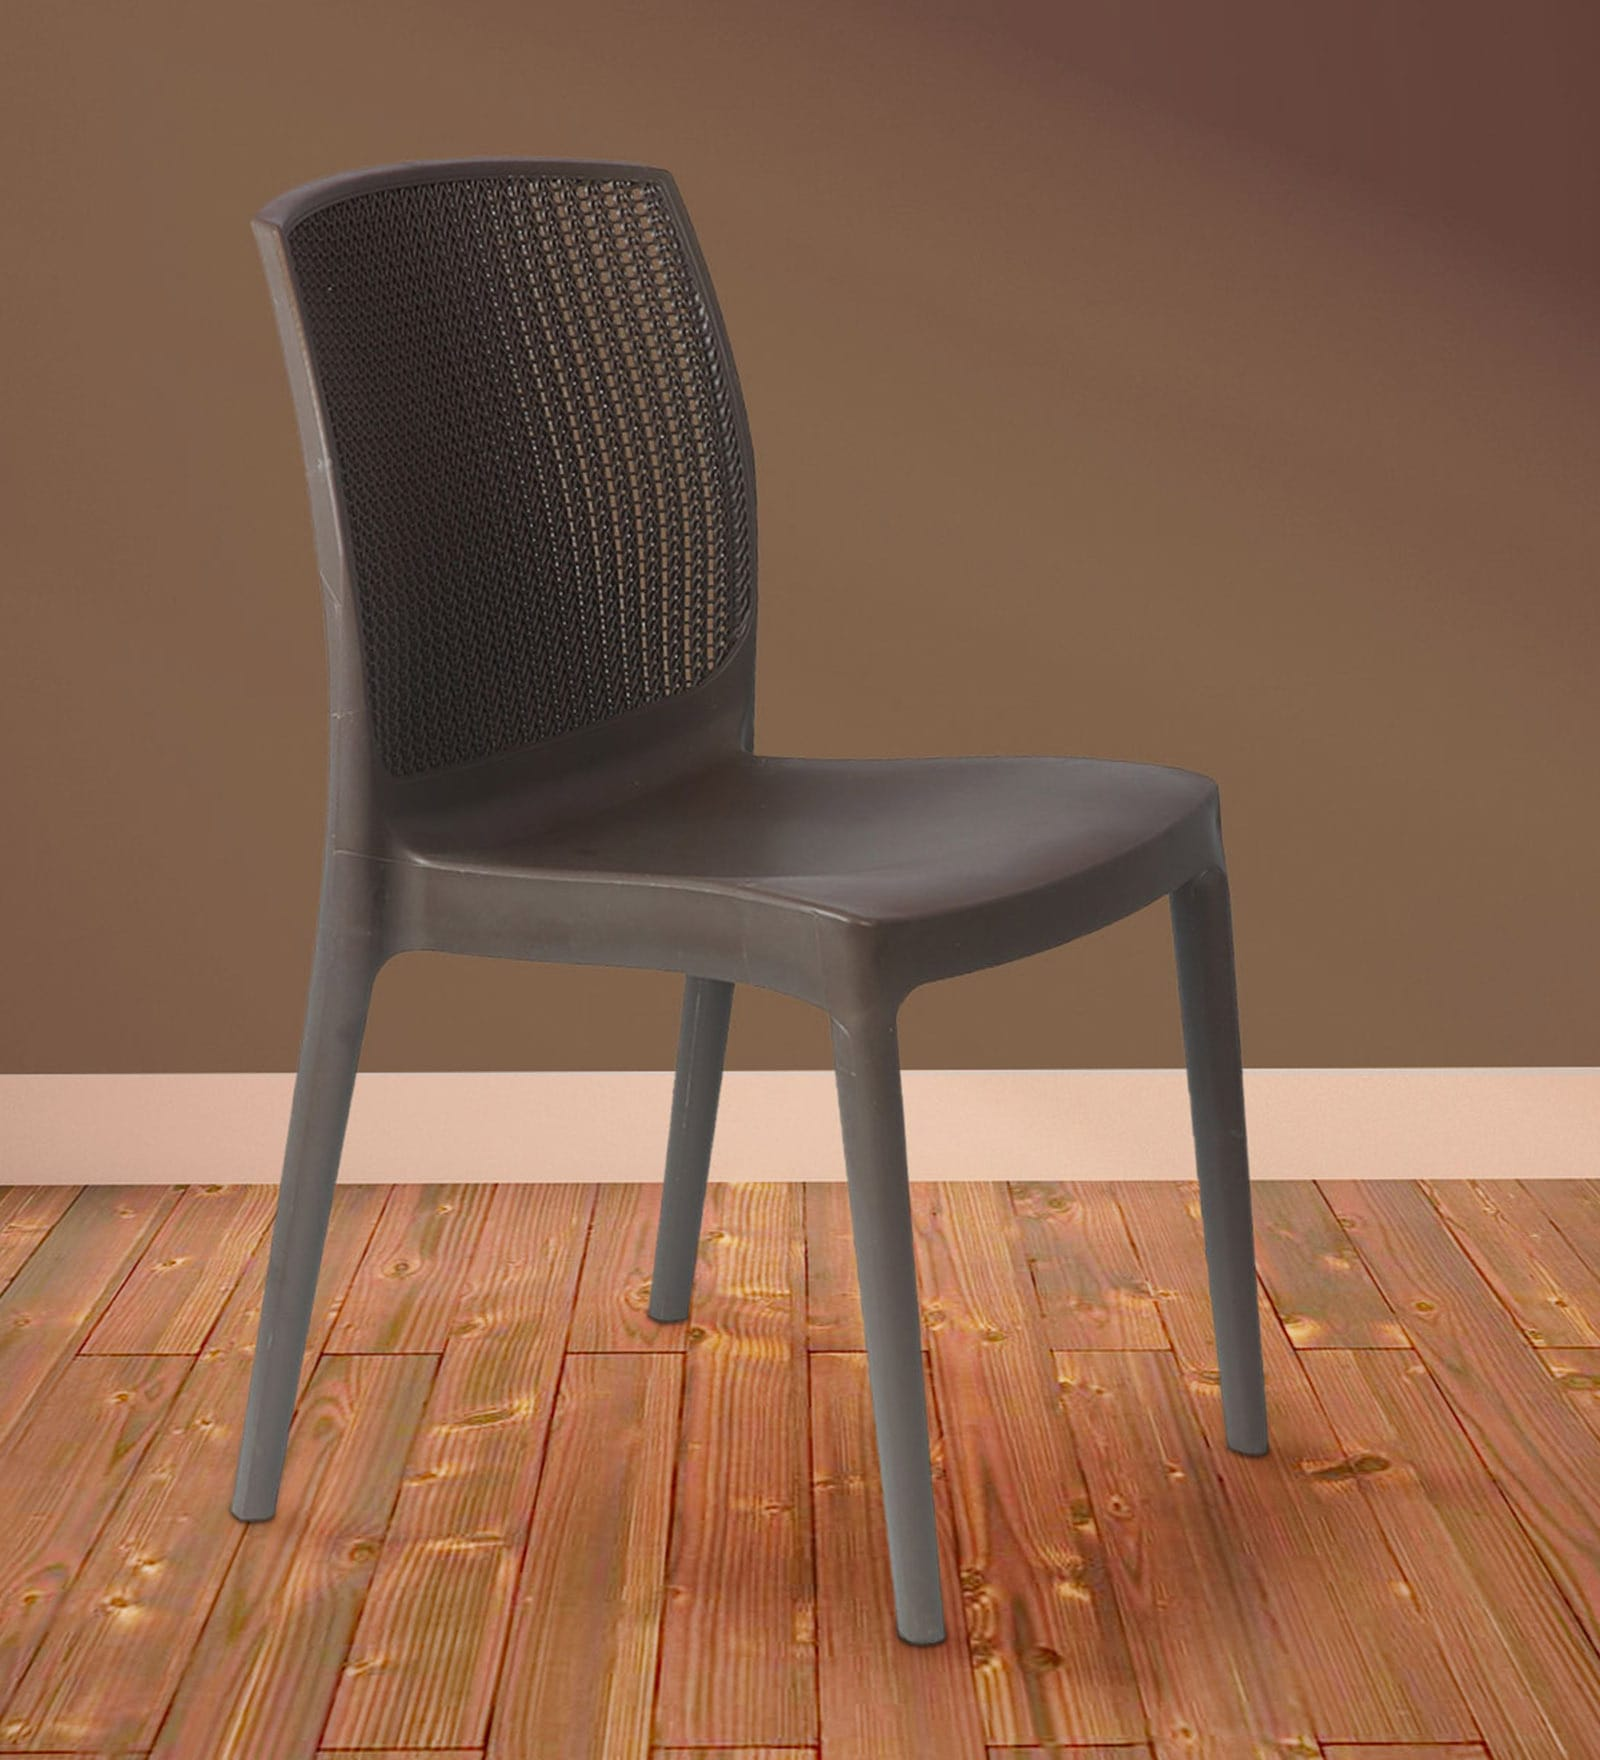 Alvira Jali design Cafe Chair in Brown Colour by Furniease